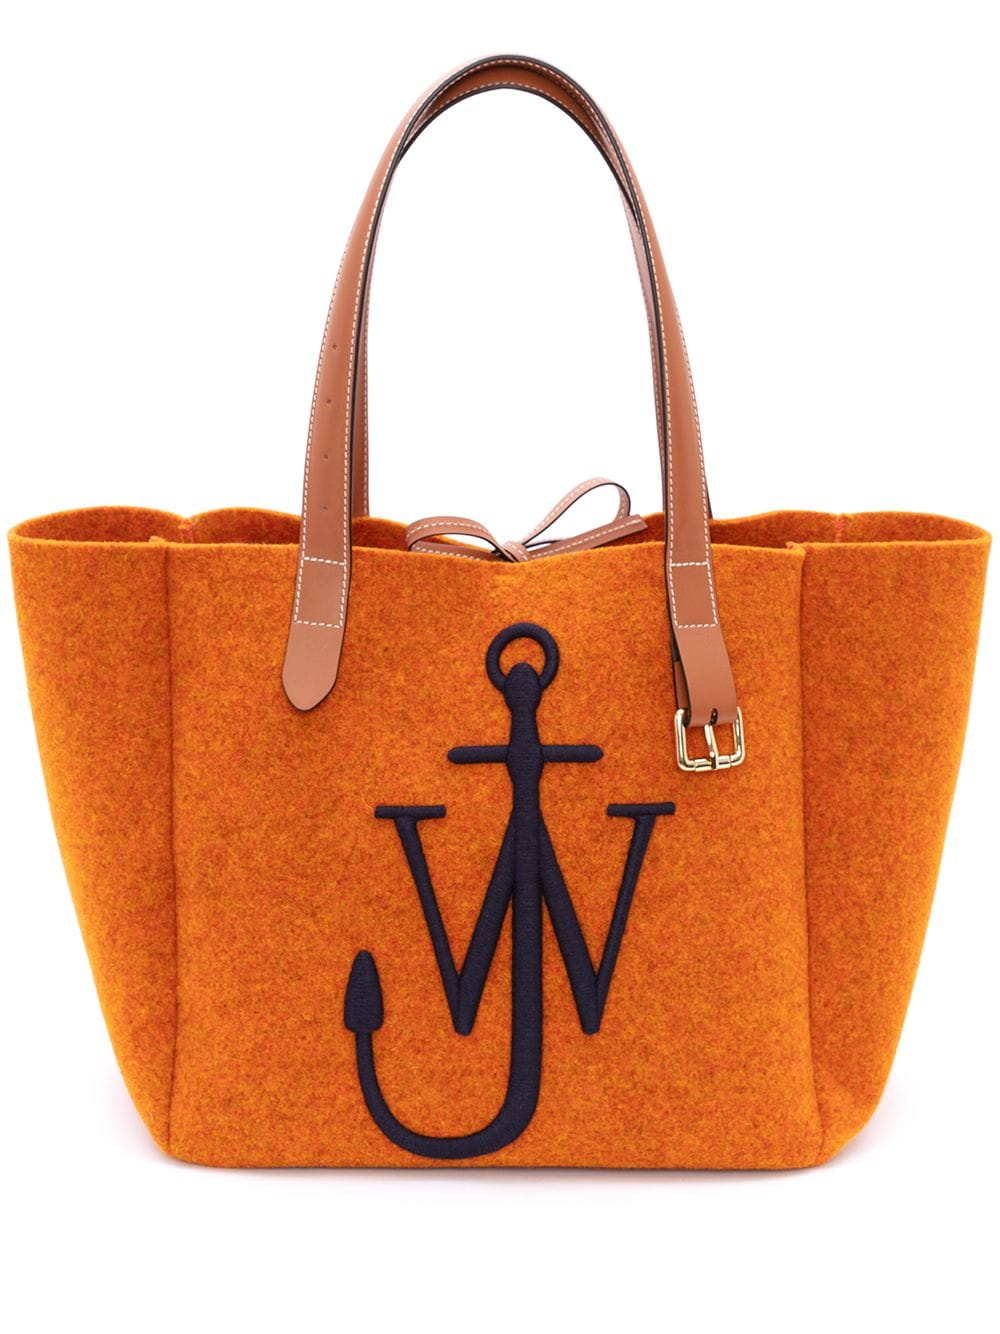 jw-anderson-belt-tote-bag-orange